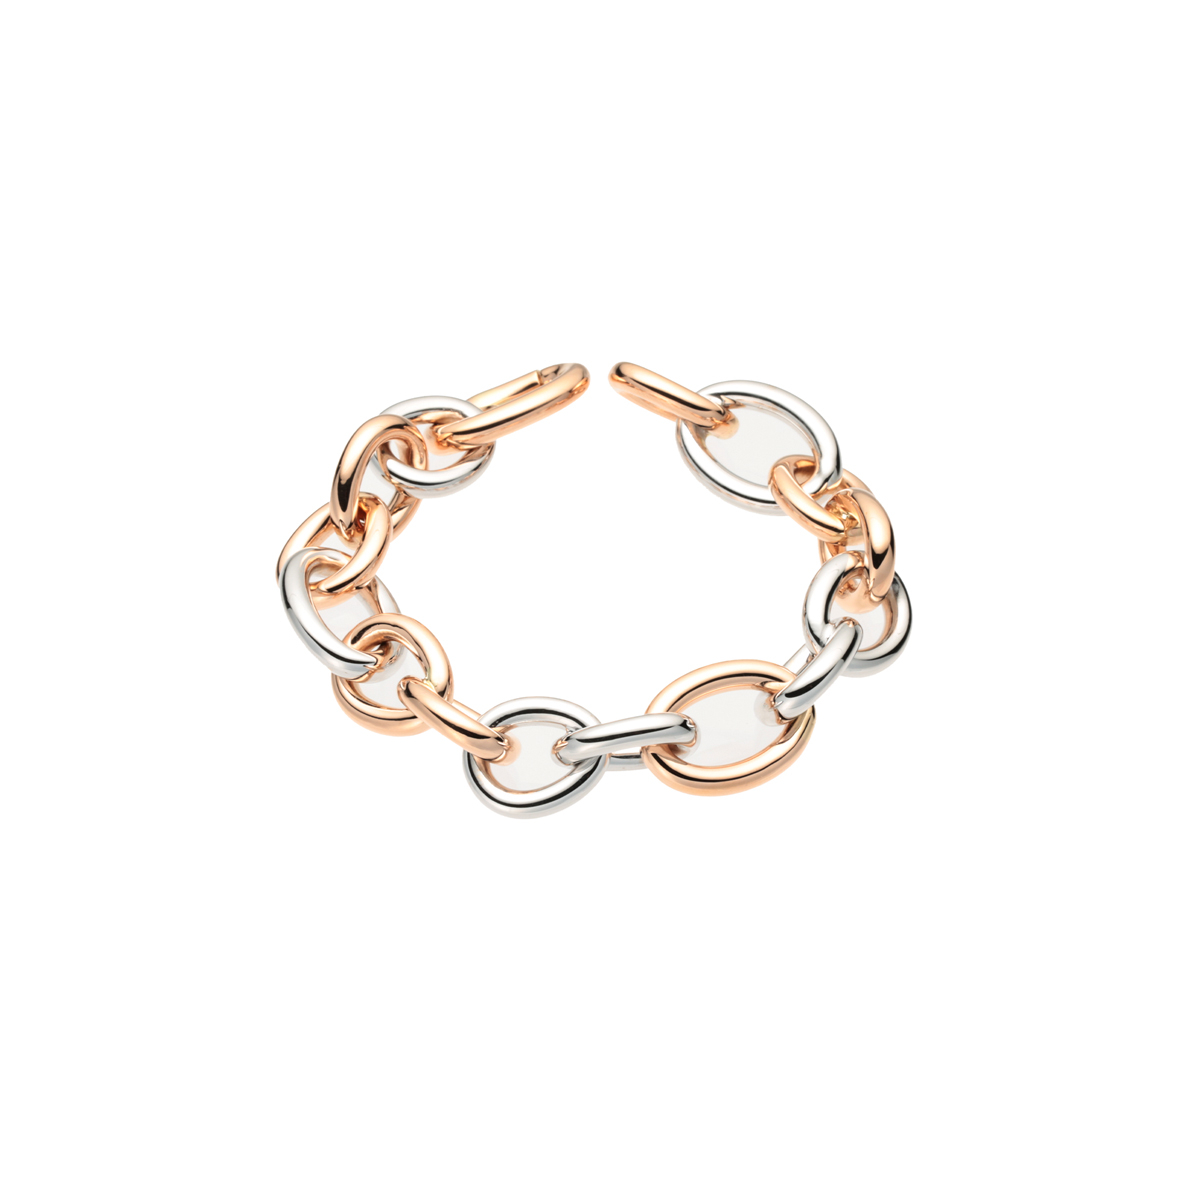 White and Rose Gold Link Chain Bracelet